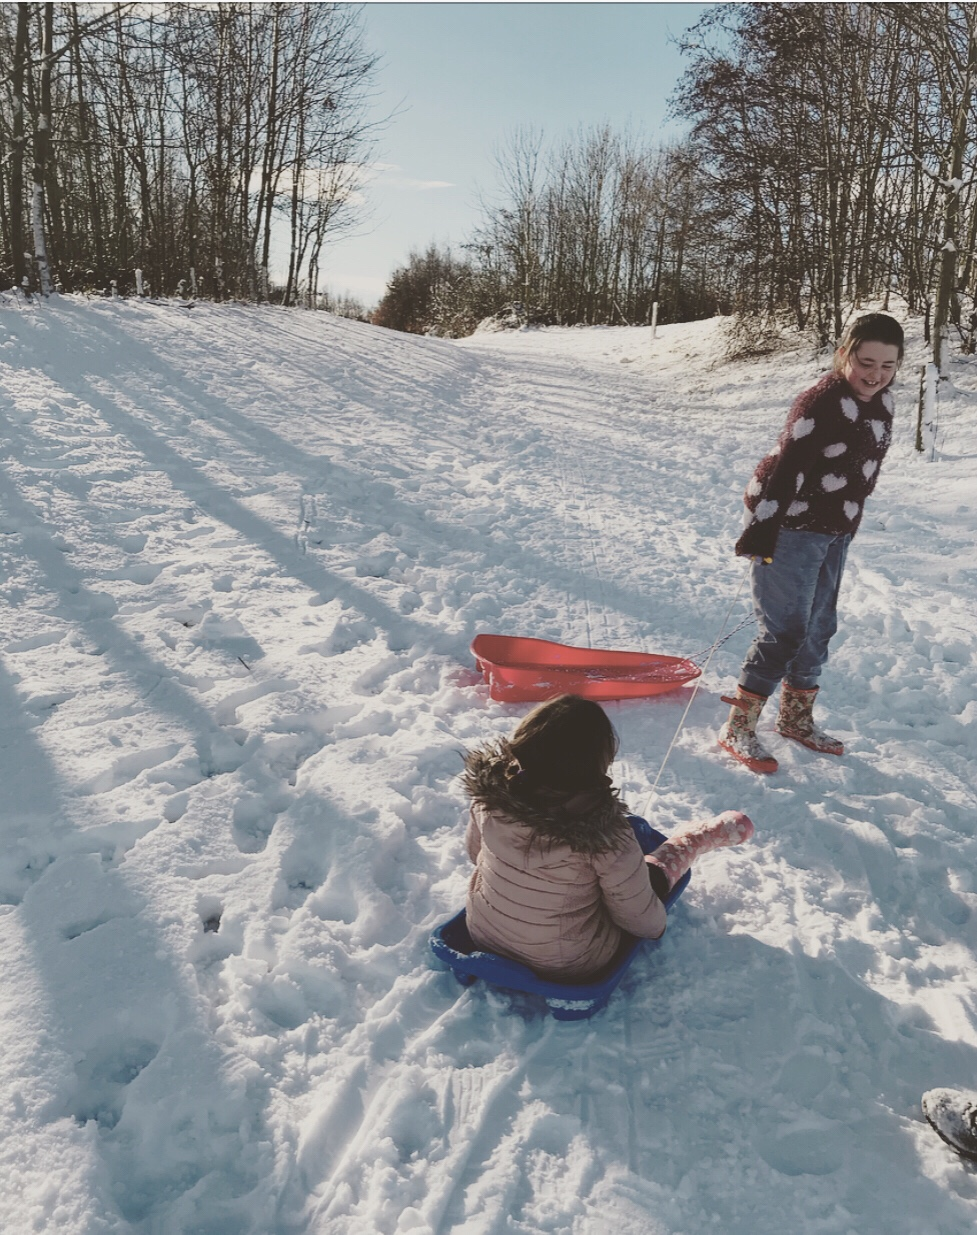 Top 10 things to do on a snow day with your children